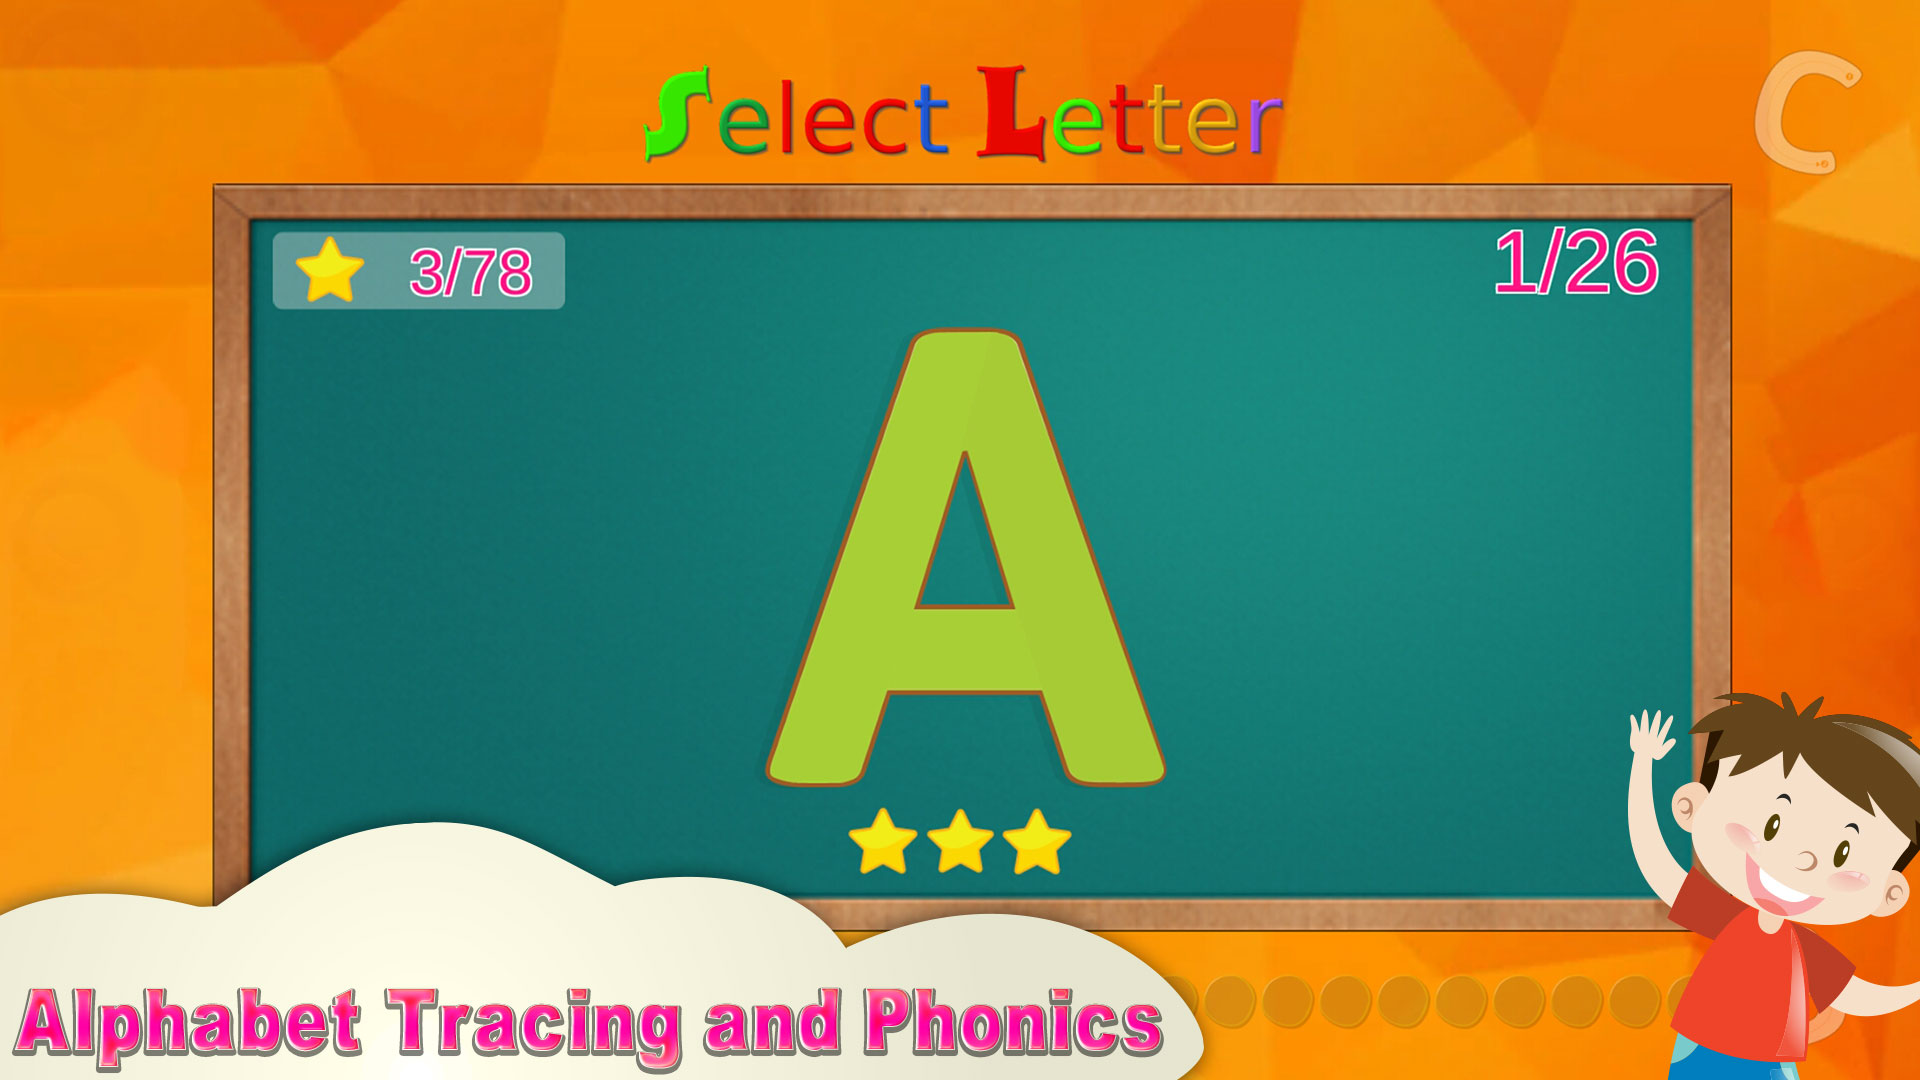 Amazon.com: ABC Learning - Alphabet Tracing and Phonics: Appstore ...